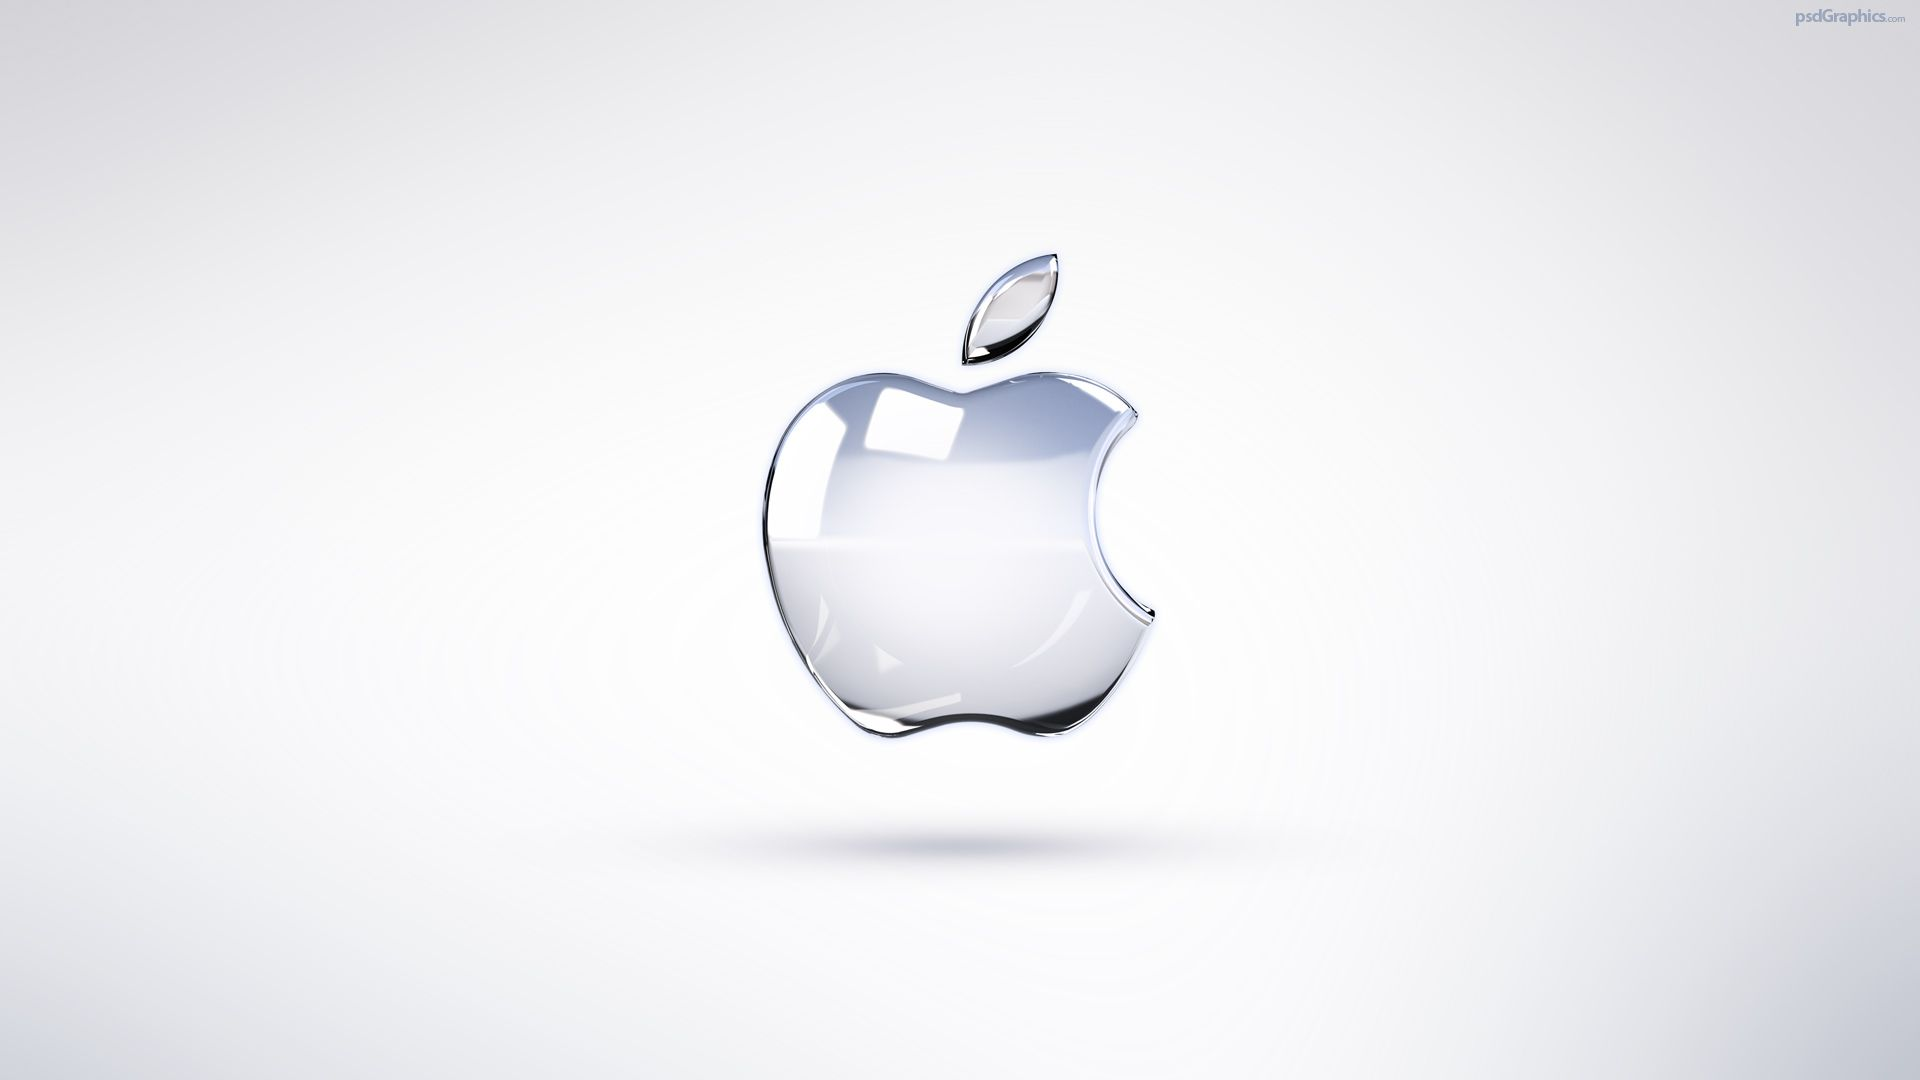 Apple Logo Hd Wallpaper Desktop Wallpapers Free Download Wallpaper 1920x1080 Apple Wallpaper Apple Logo Wallpaper Apple Wallpaper Full Hd